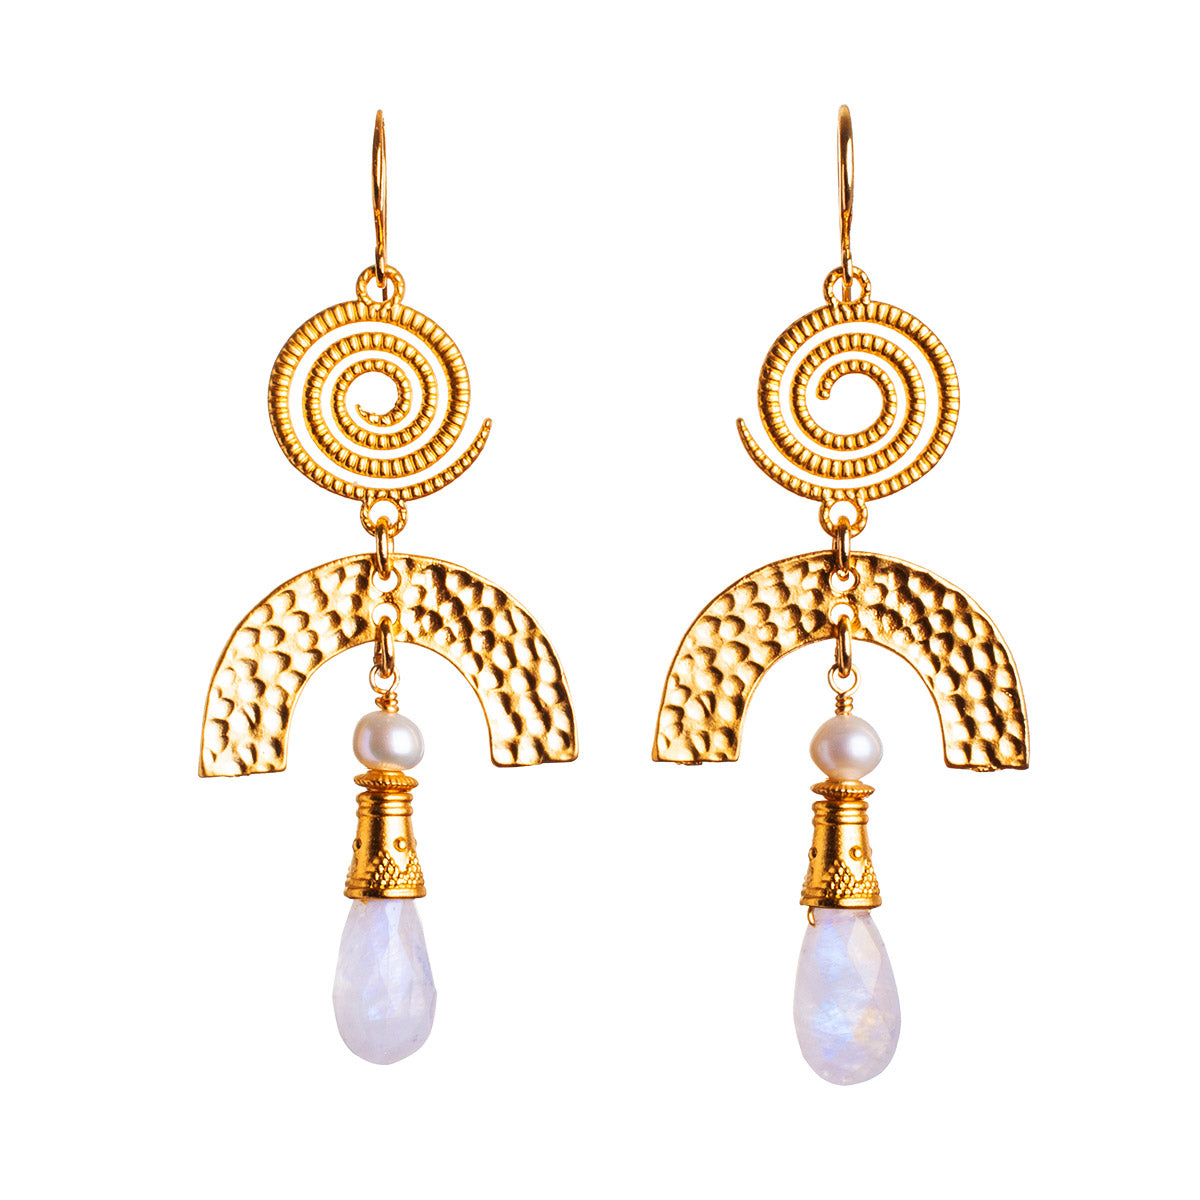 N°656 The Delicious Moonstone Umbrella Statement Earrings